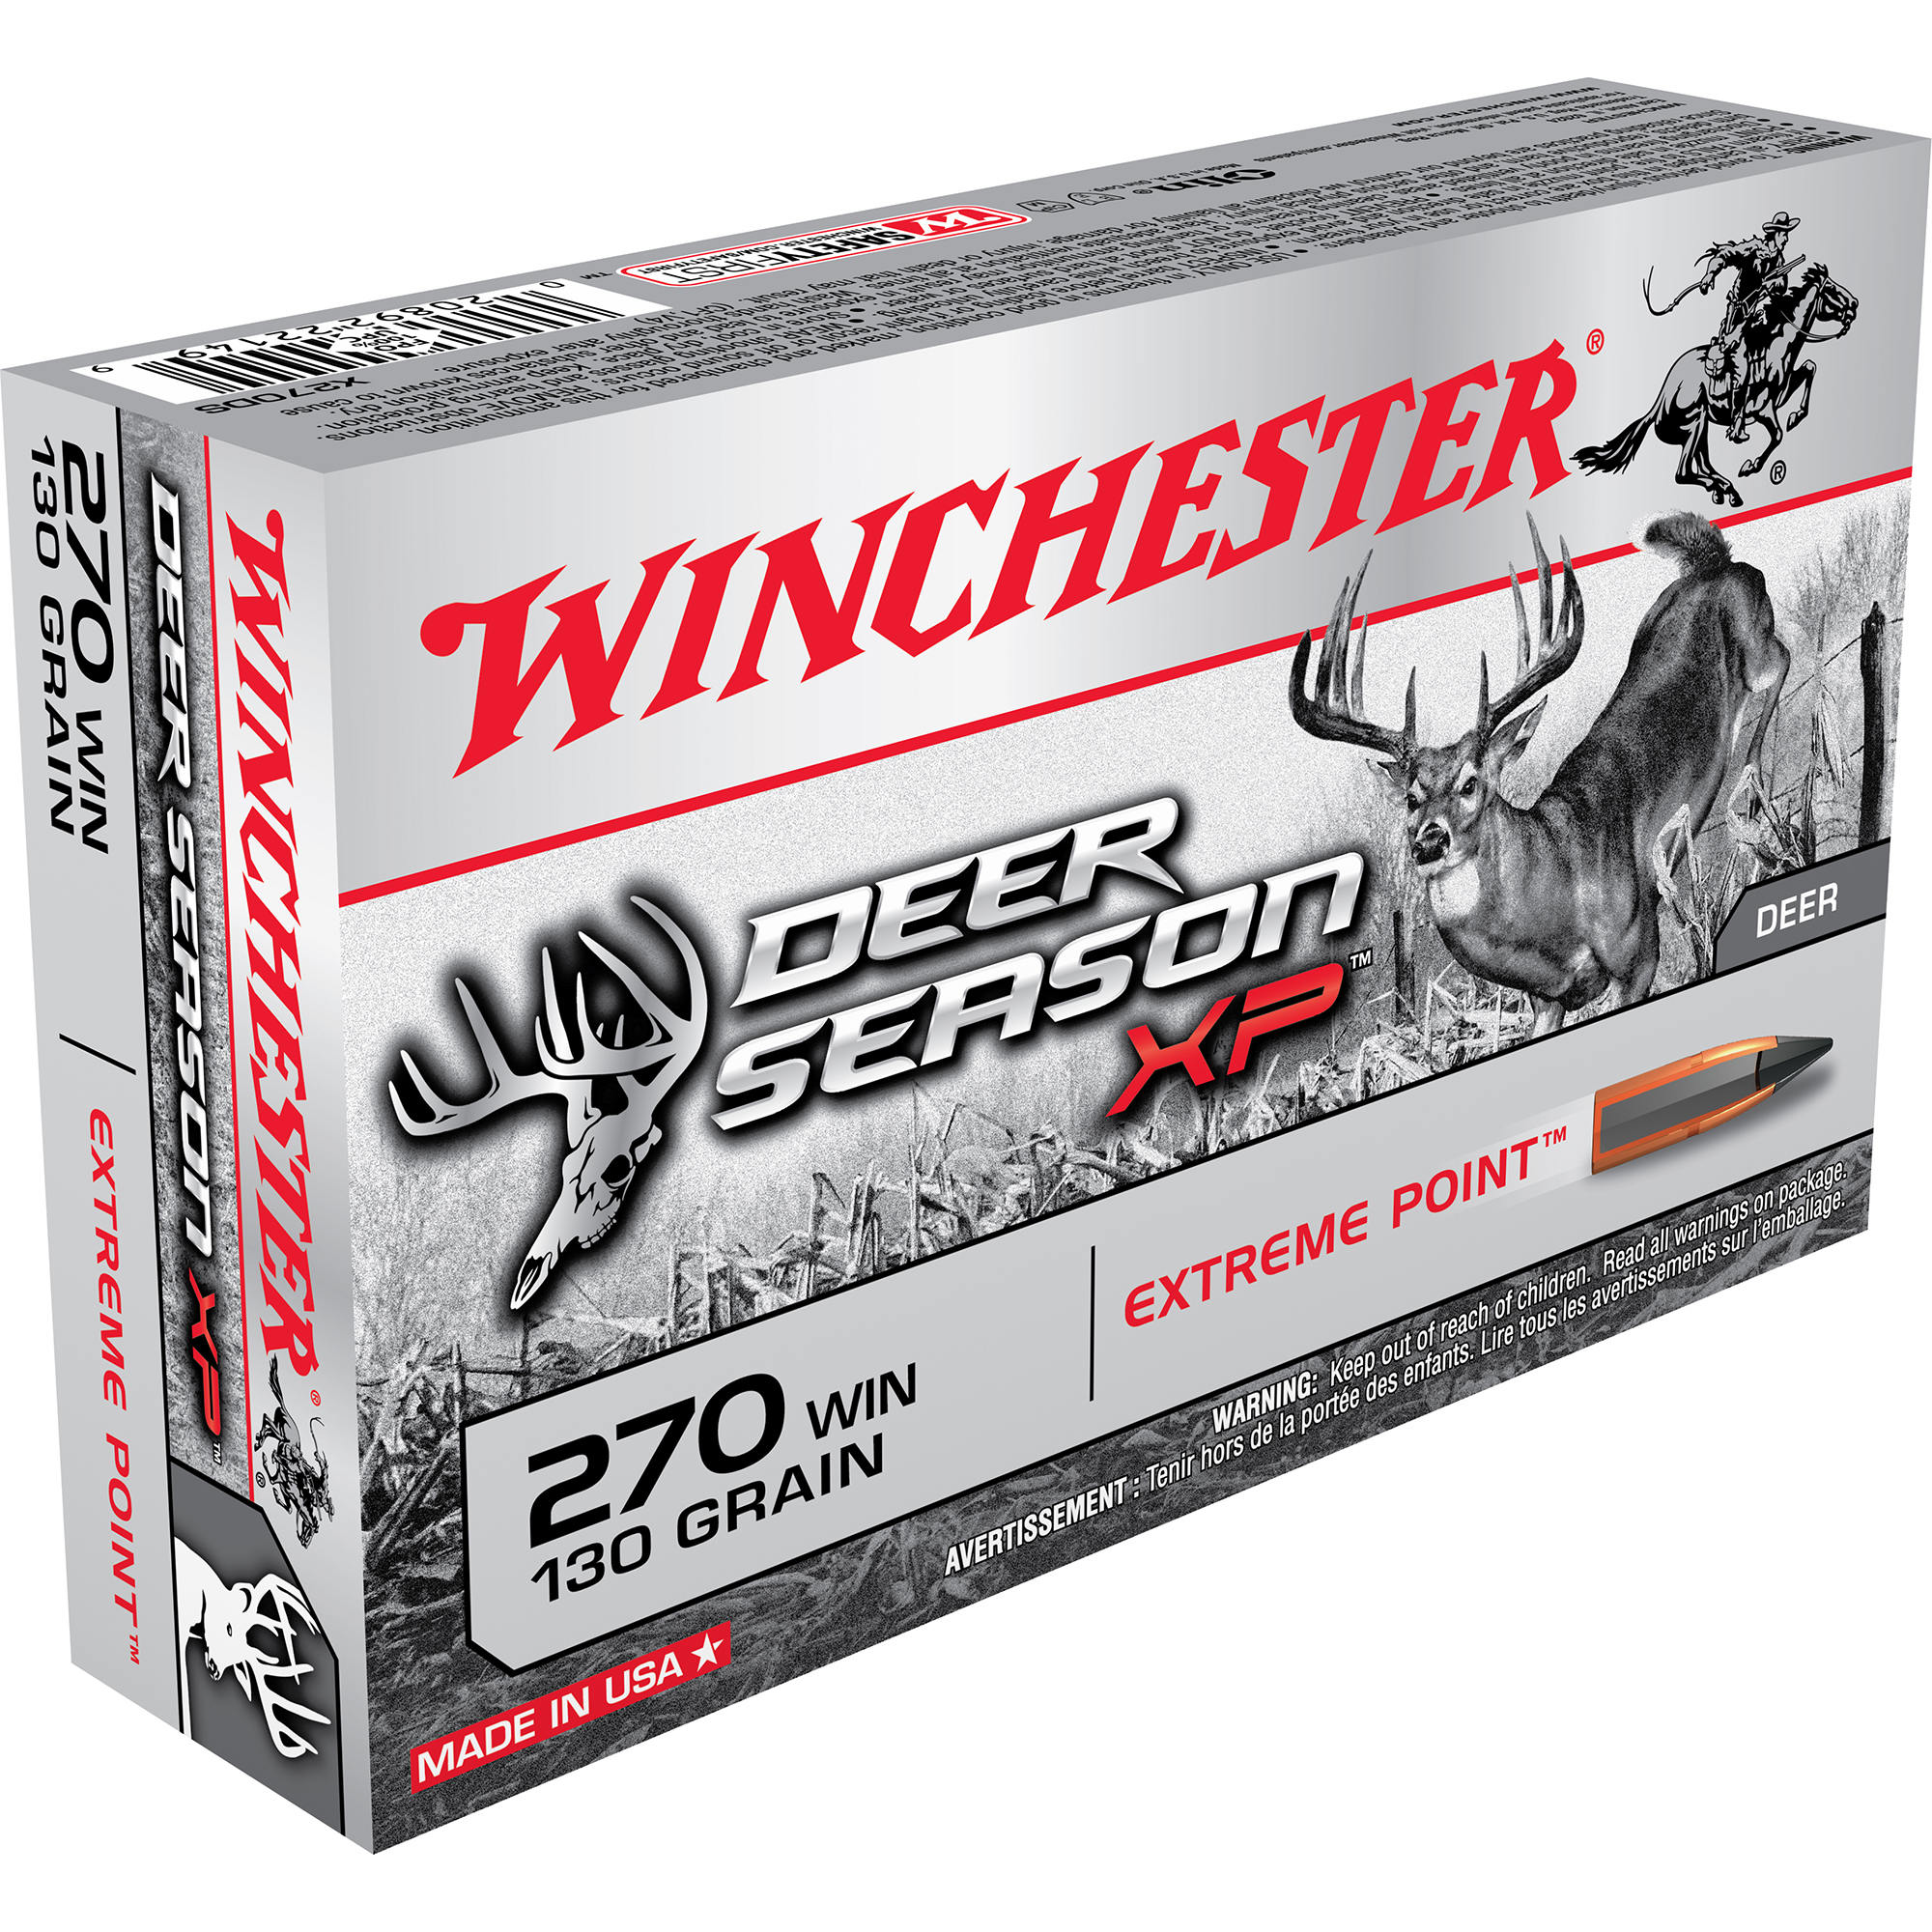 Winchester Deer Season XP Rifle Ammo, .270 Win, 130-gr, Extreme Point